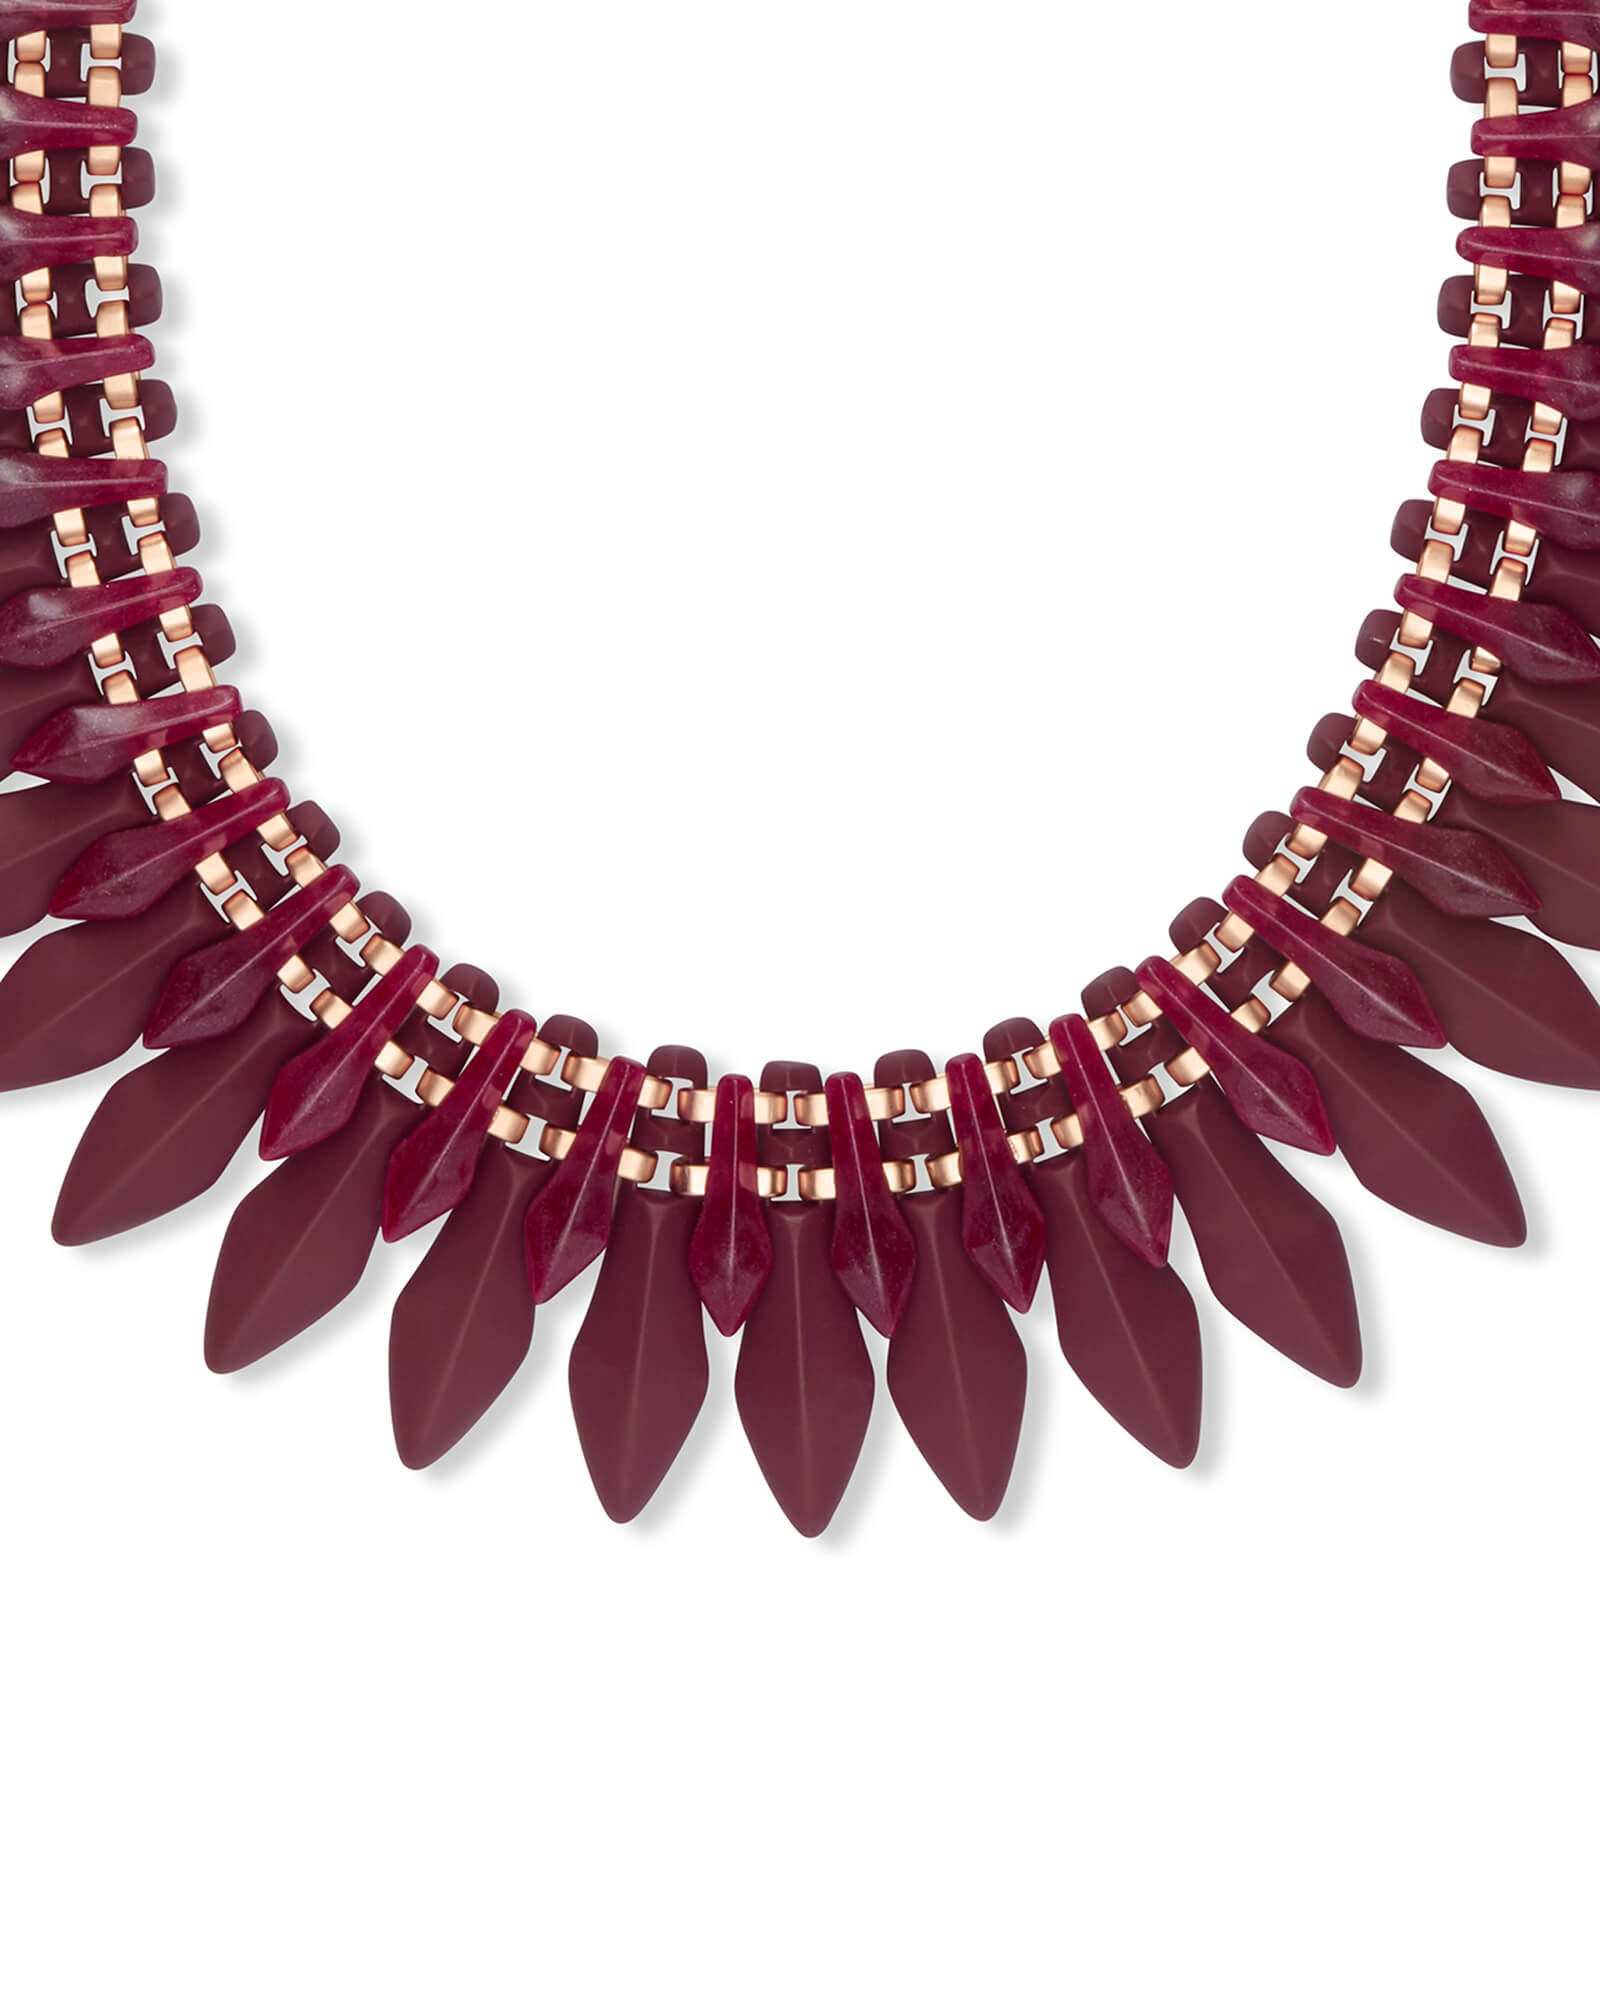 Lazarus Rose Gold Statement Necklace in Maroon Marbled Acrylic